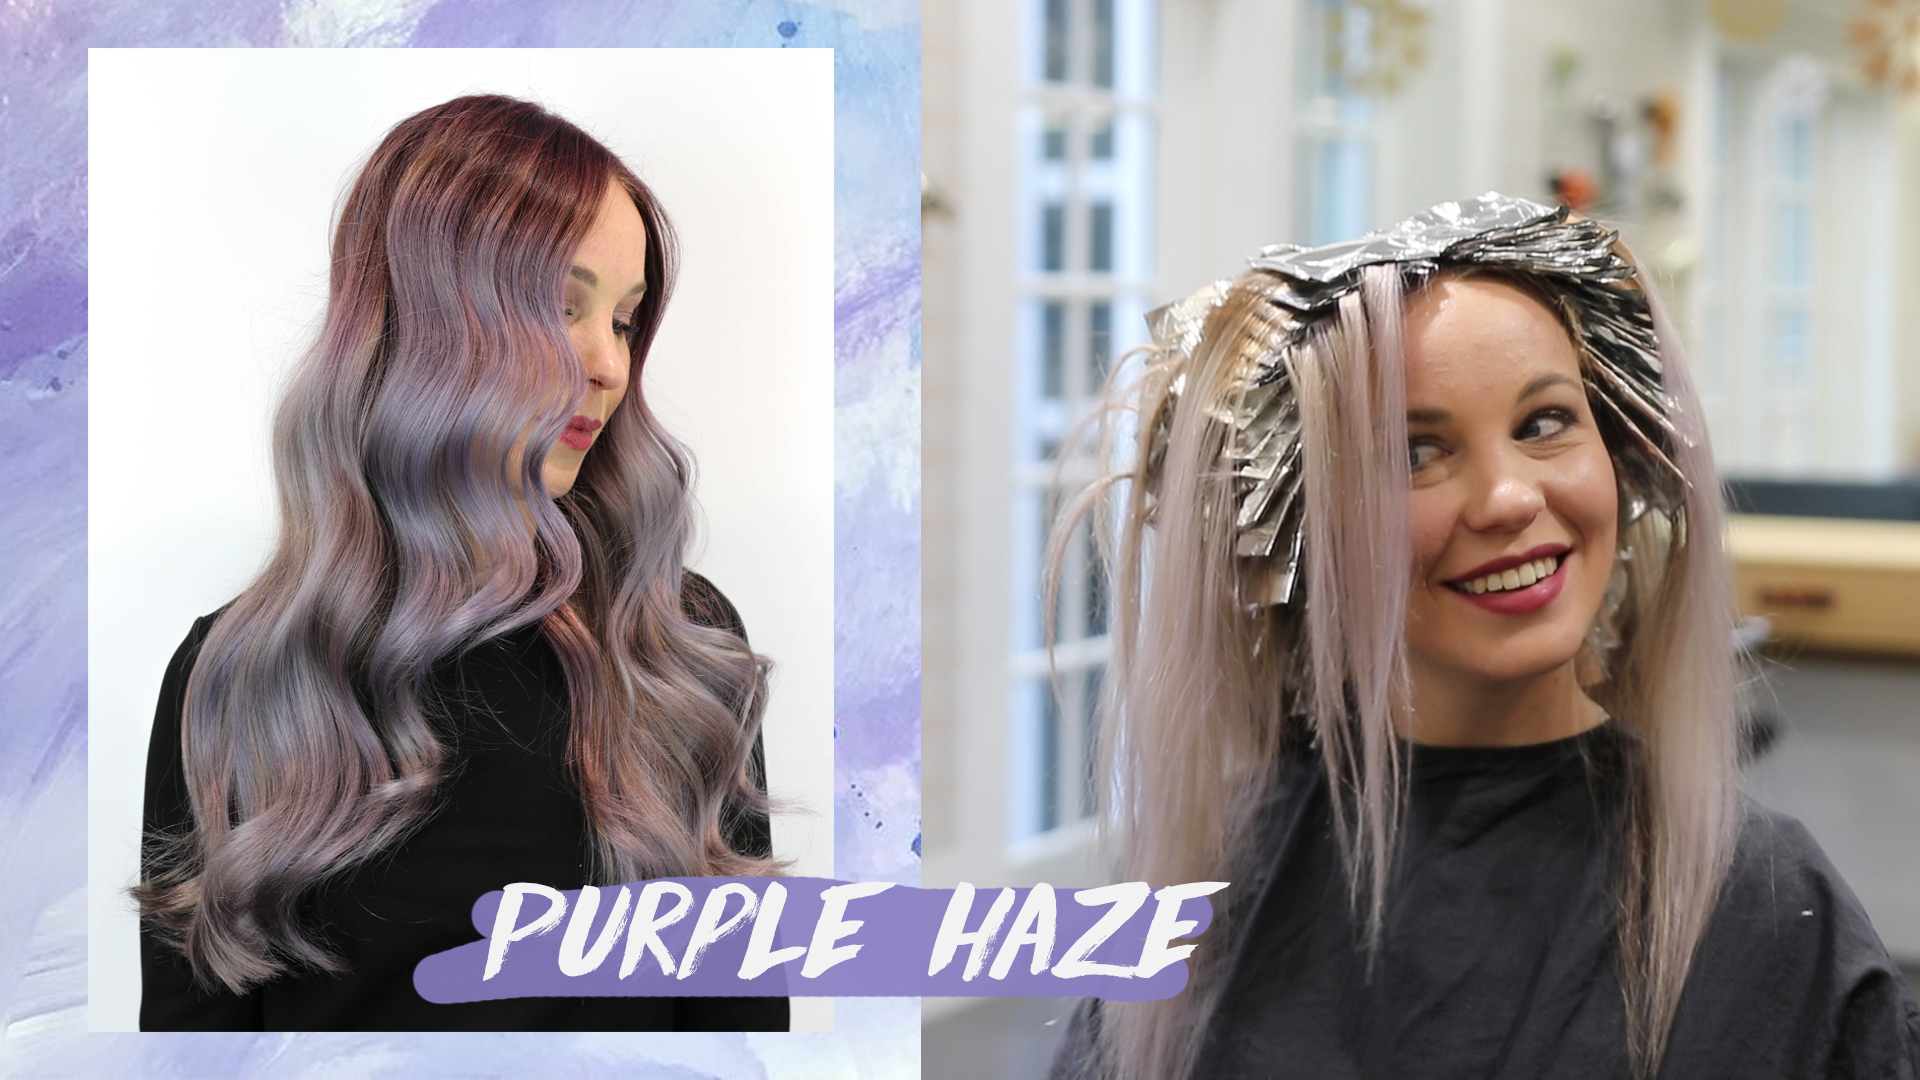 Make-over: Purple haze